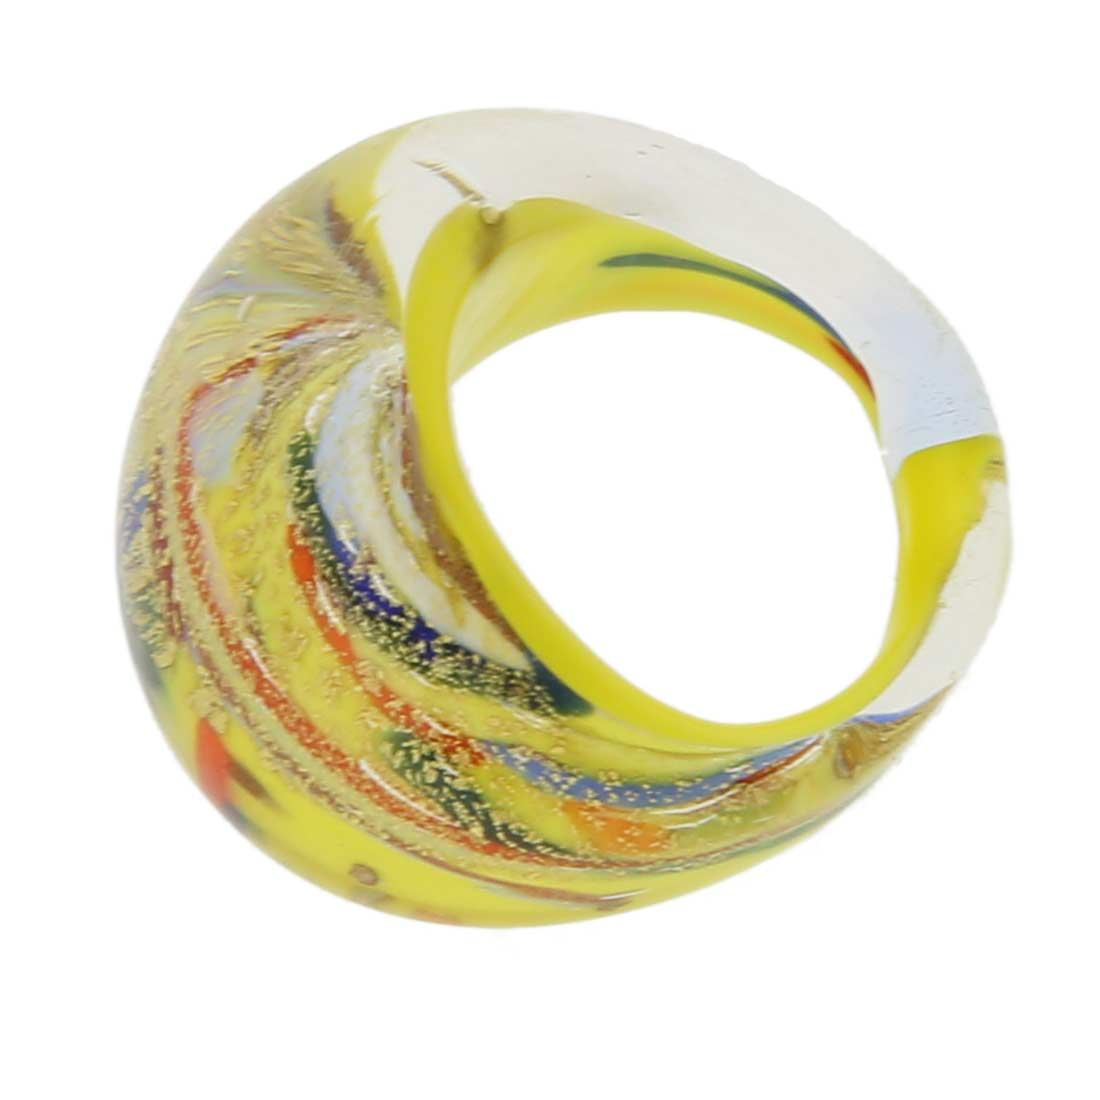 Avventurina Yellow Sunshine Ring In Domed Design